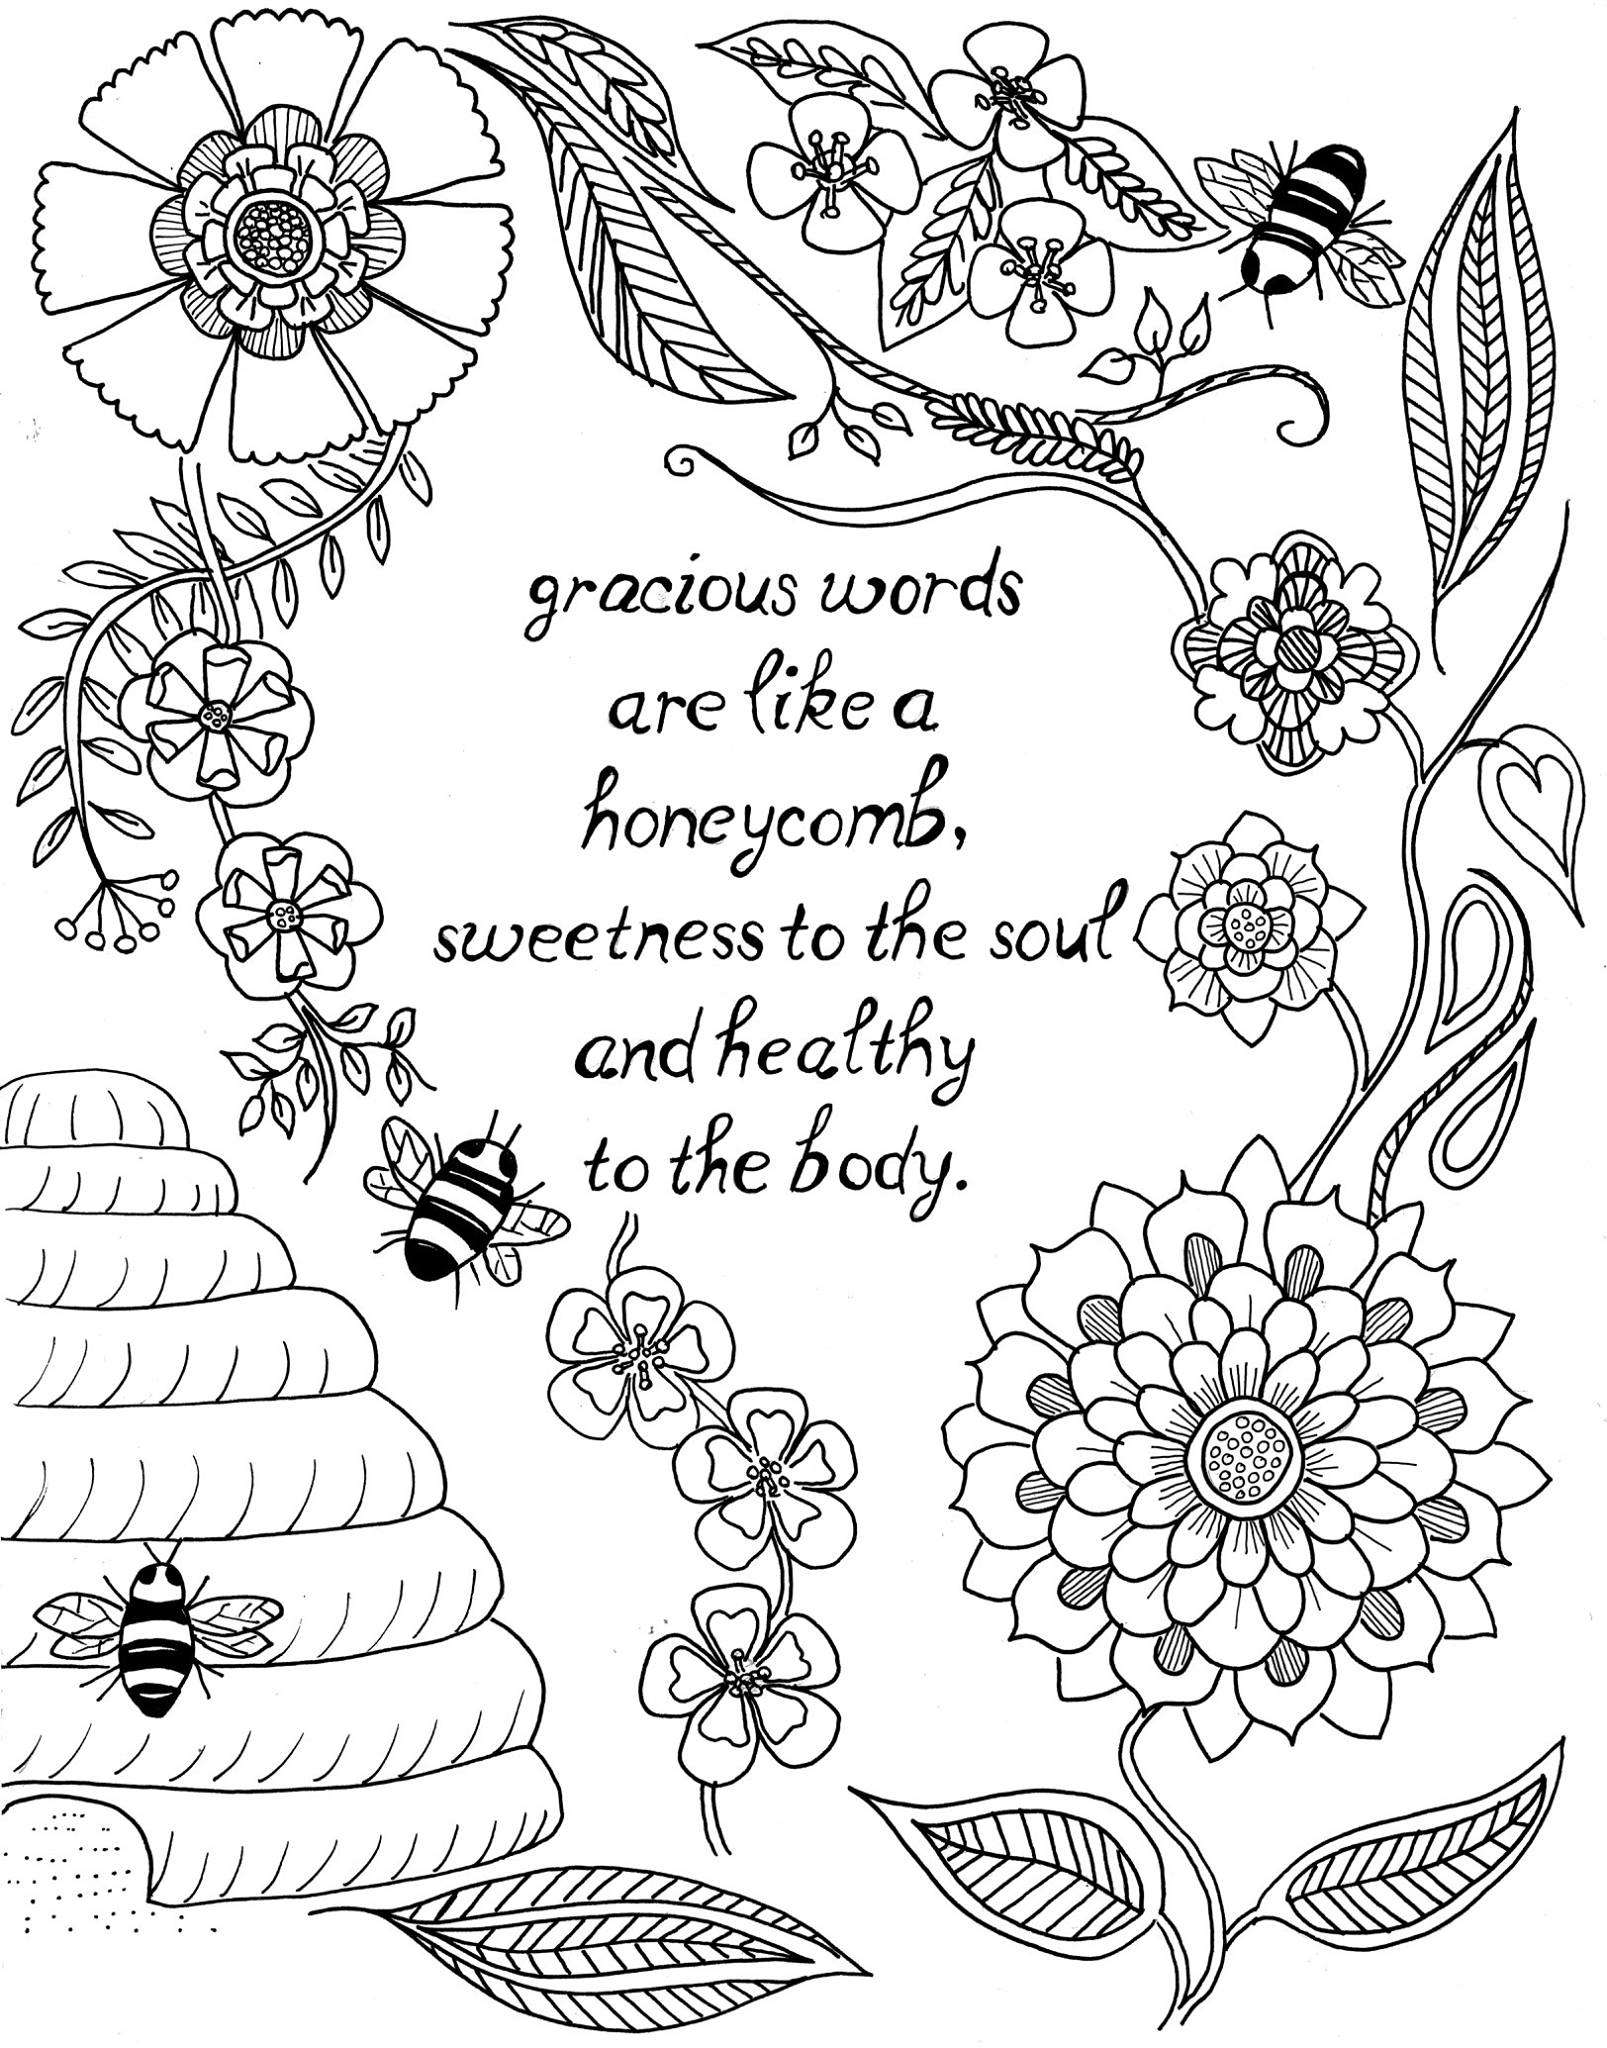 Christmas Bible Verse Coloring Pages With Scripture For Adults Pdf